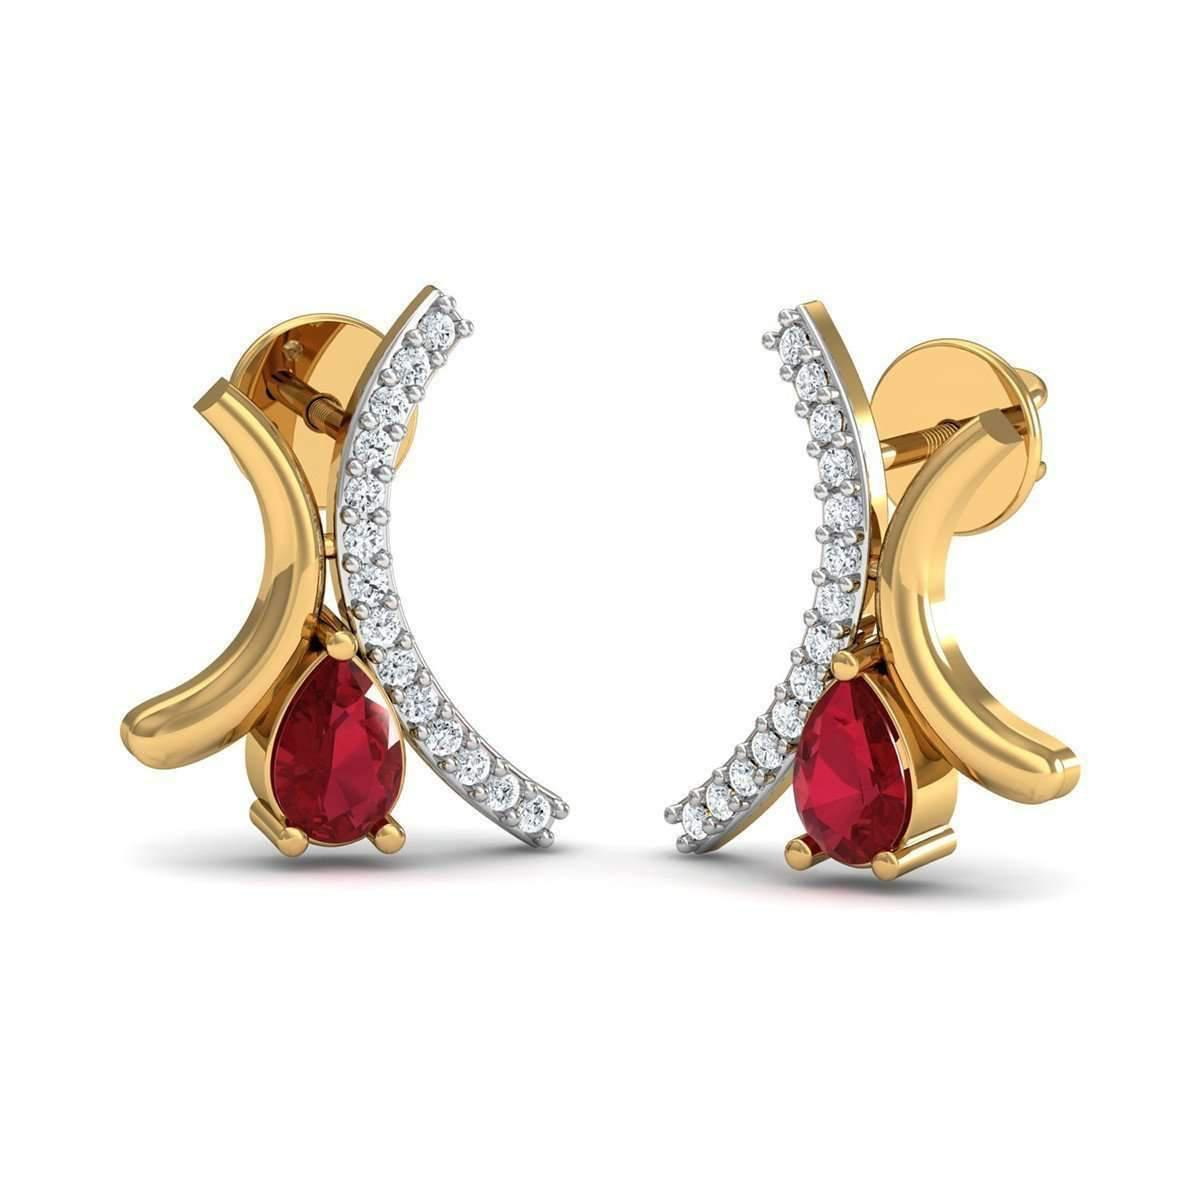 Diamoire Jewels Pave Set Diamond and Pear Cut Ruby Pendant in 10kt Yellow Gold xqovNA38